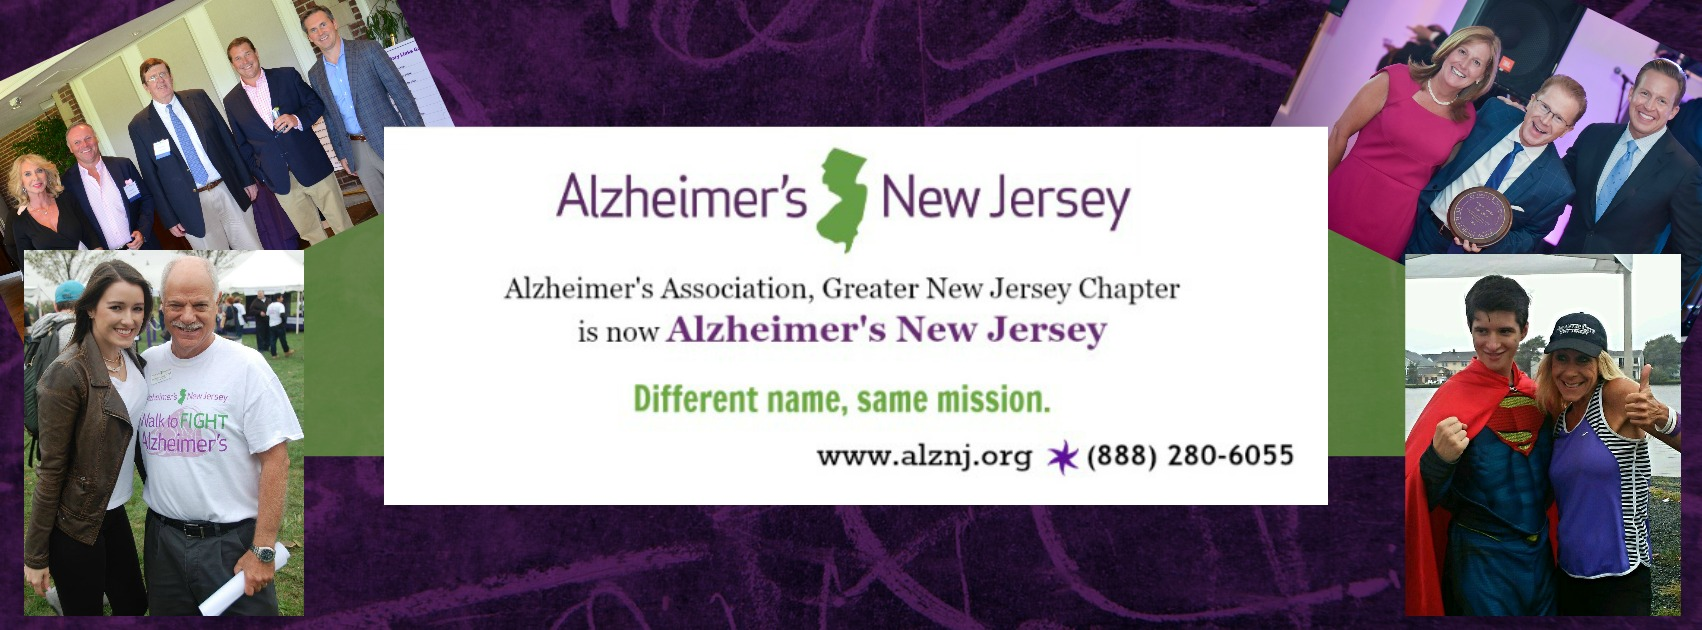 Committed to You and All of New Jersey - Alzheimer's New Jersey